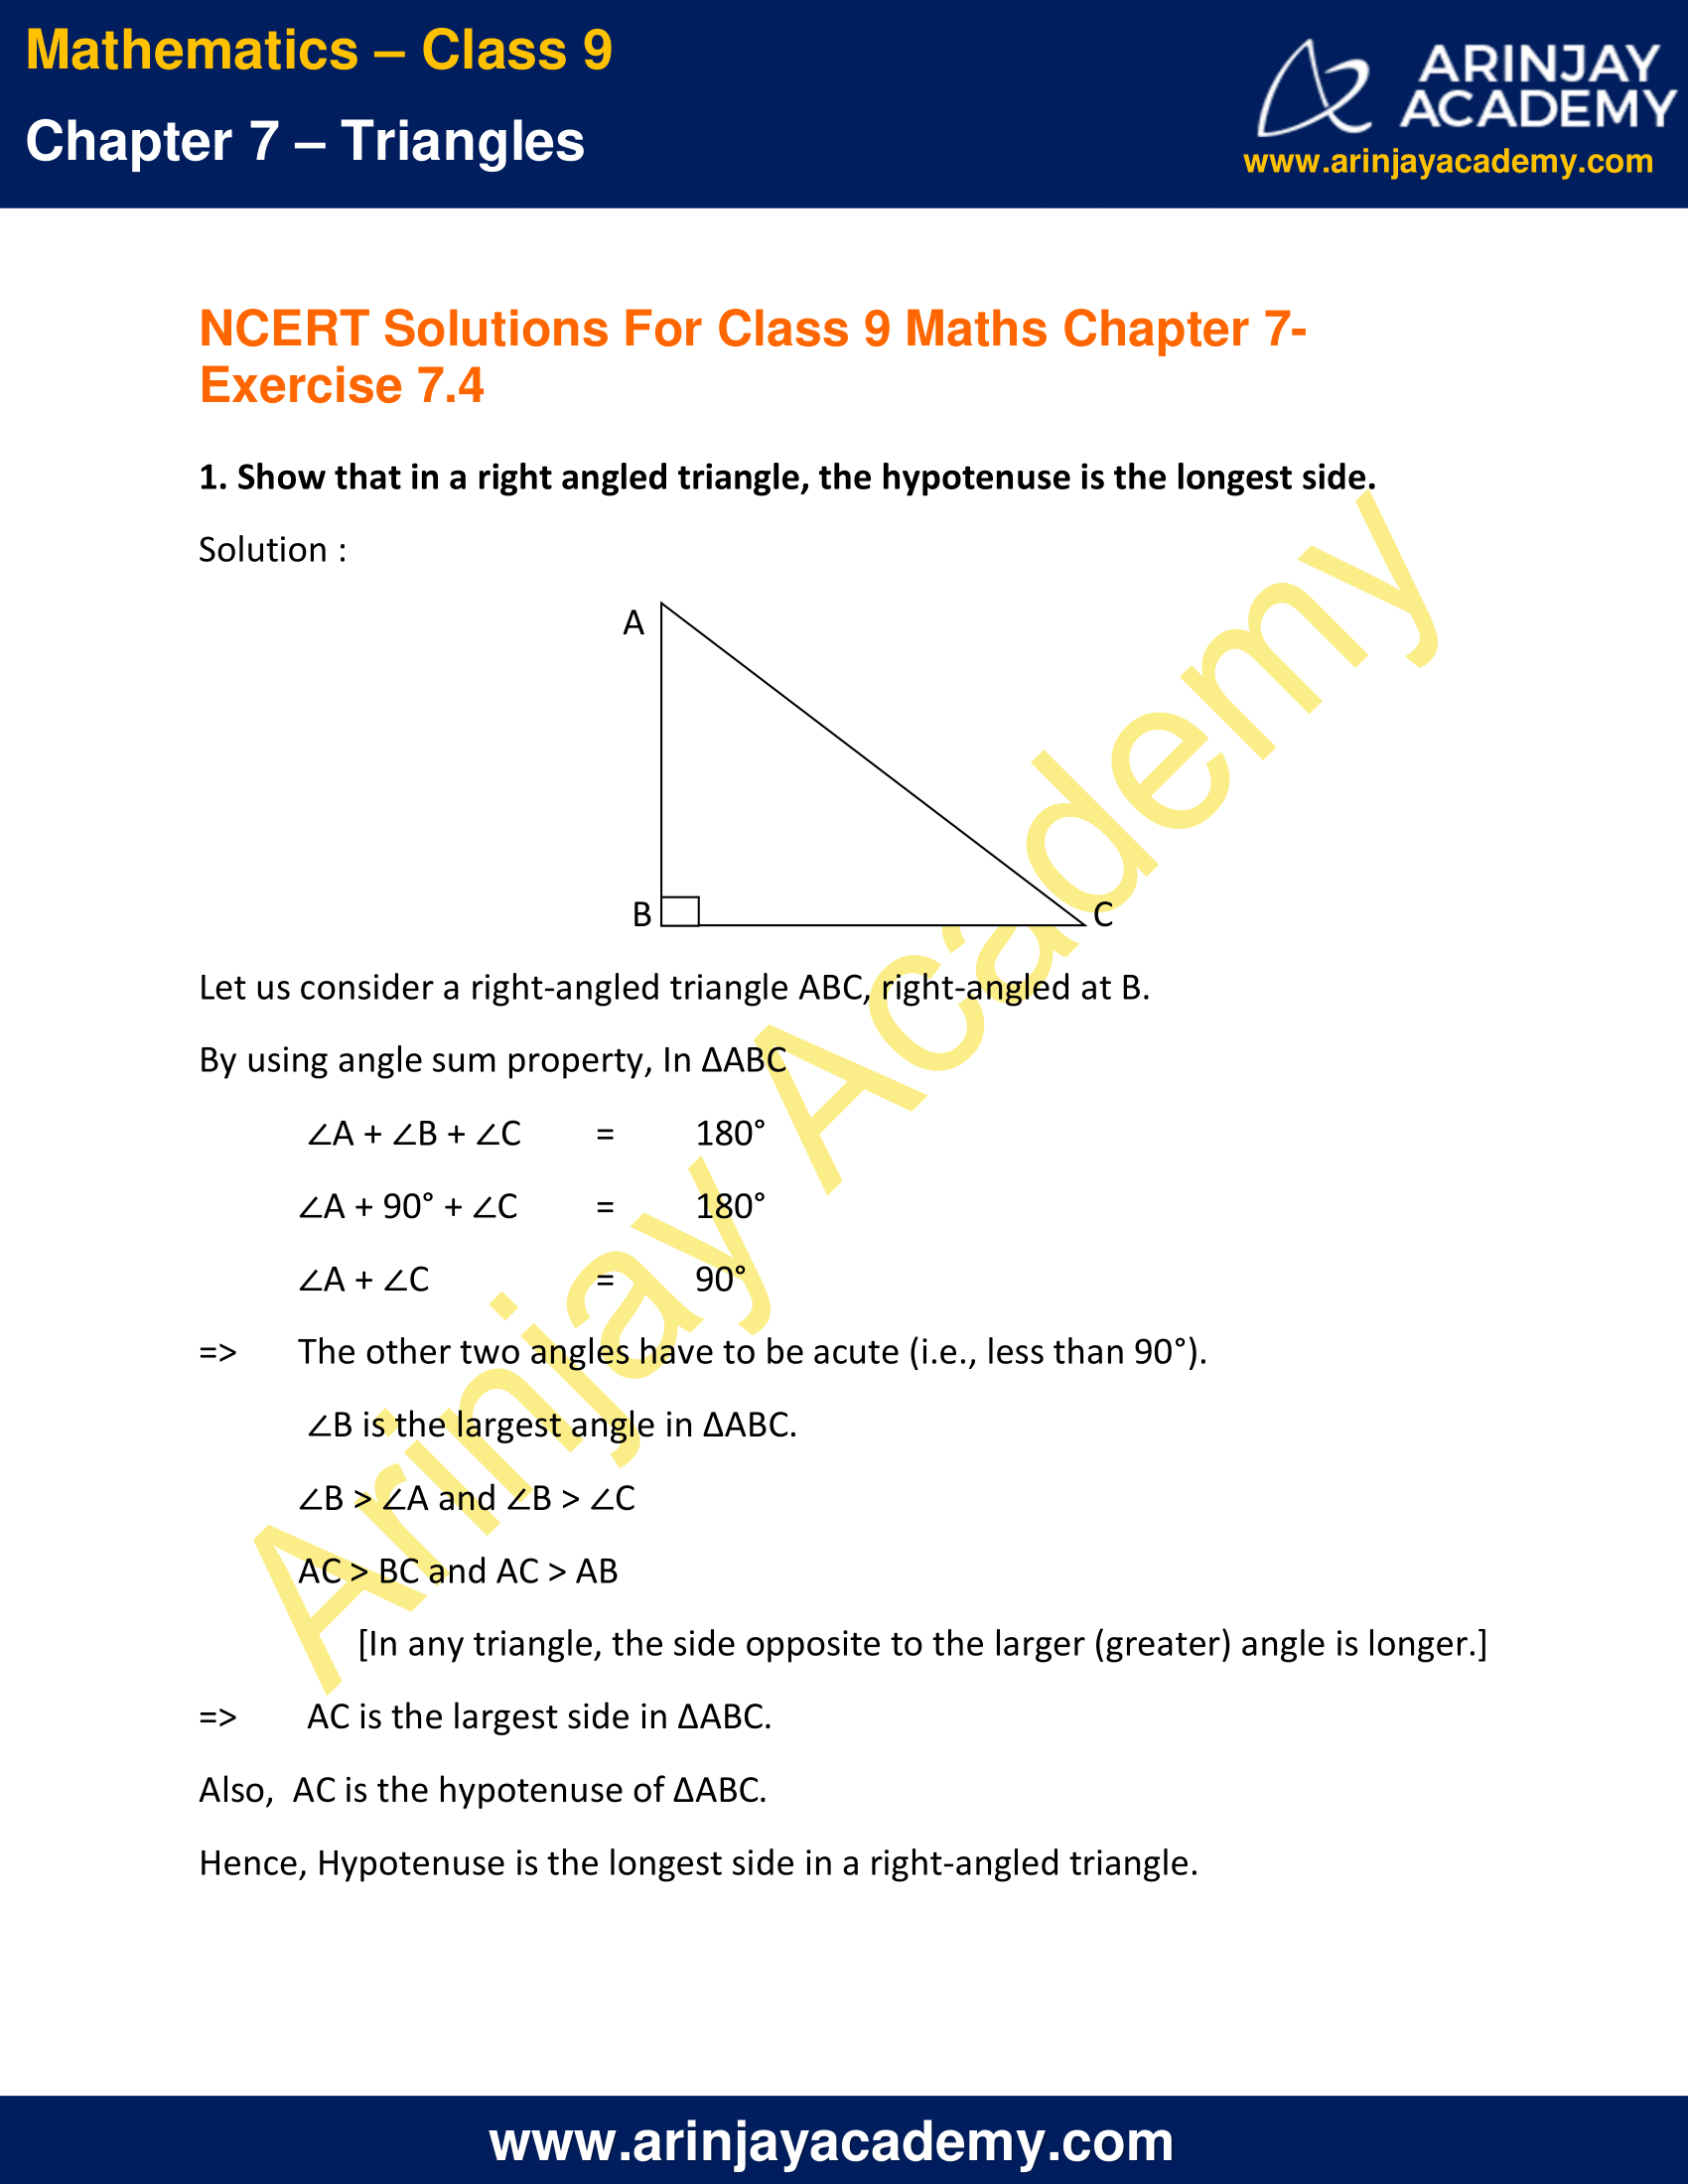 NCERT Solutions for Class 9 Maths Chapter 7 Exercise 7.4 image 1